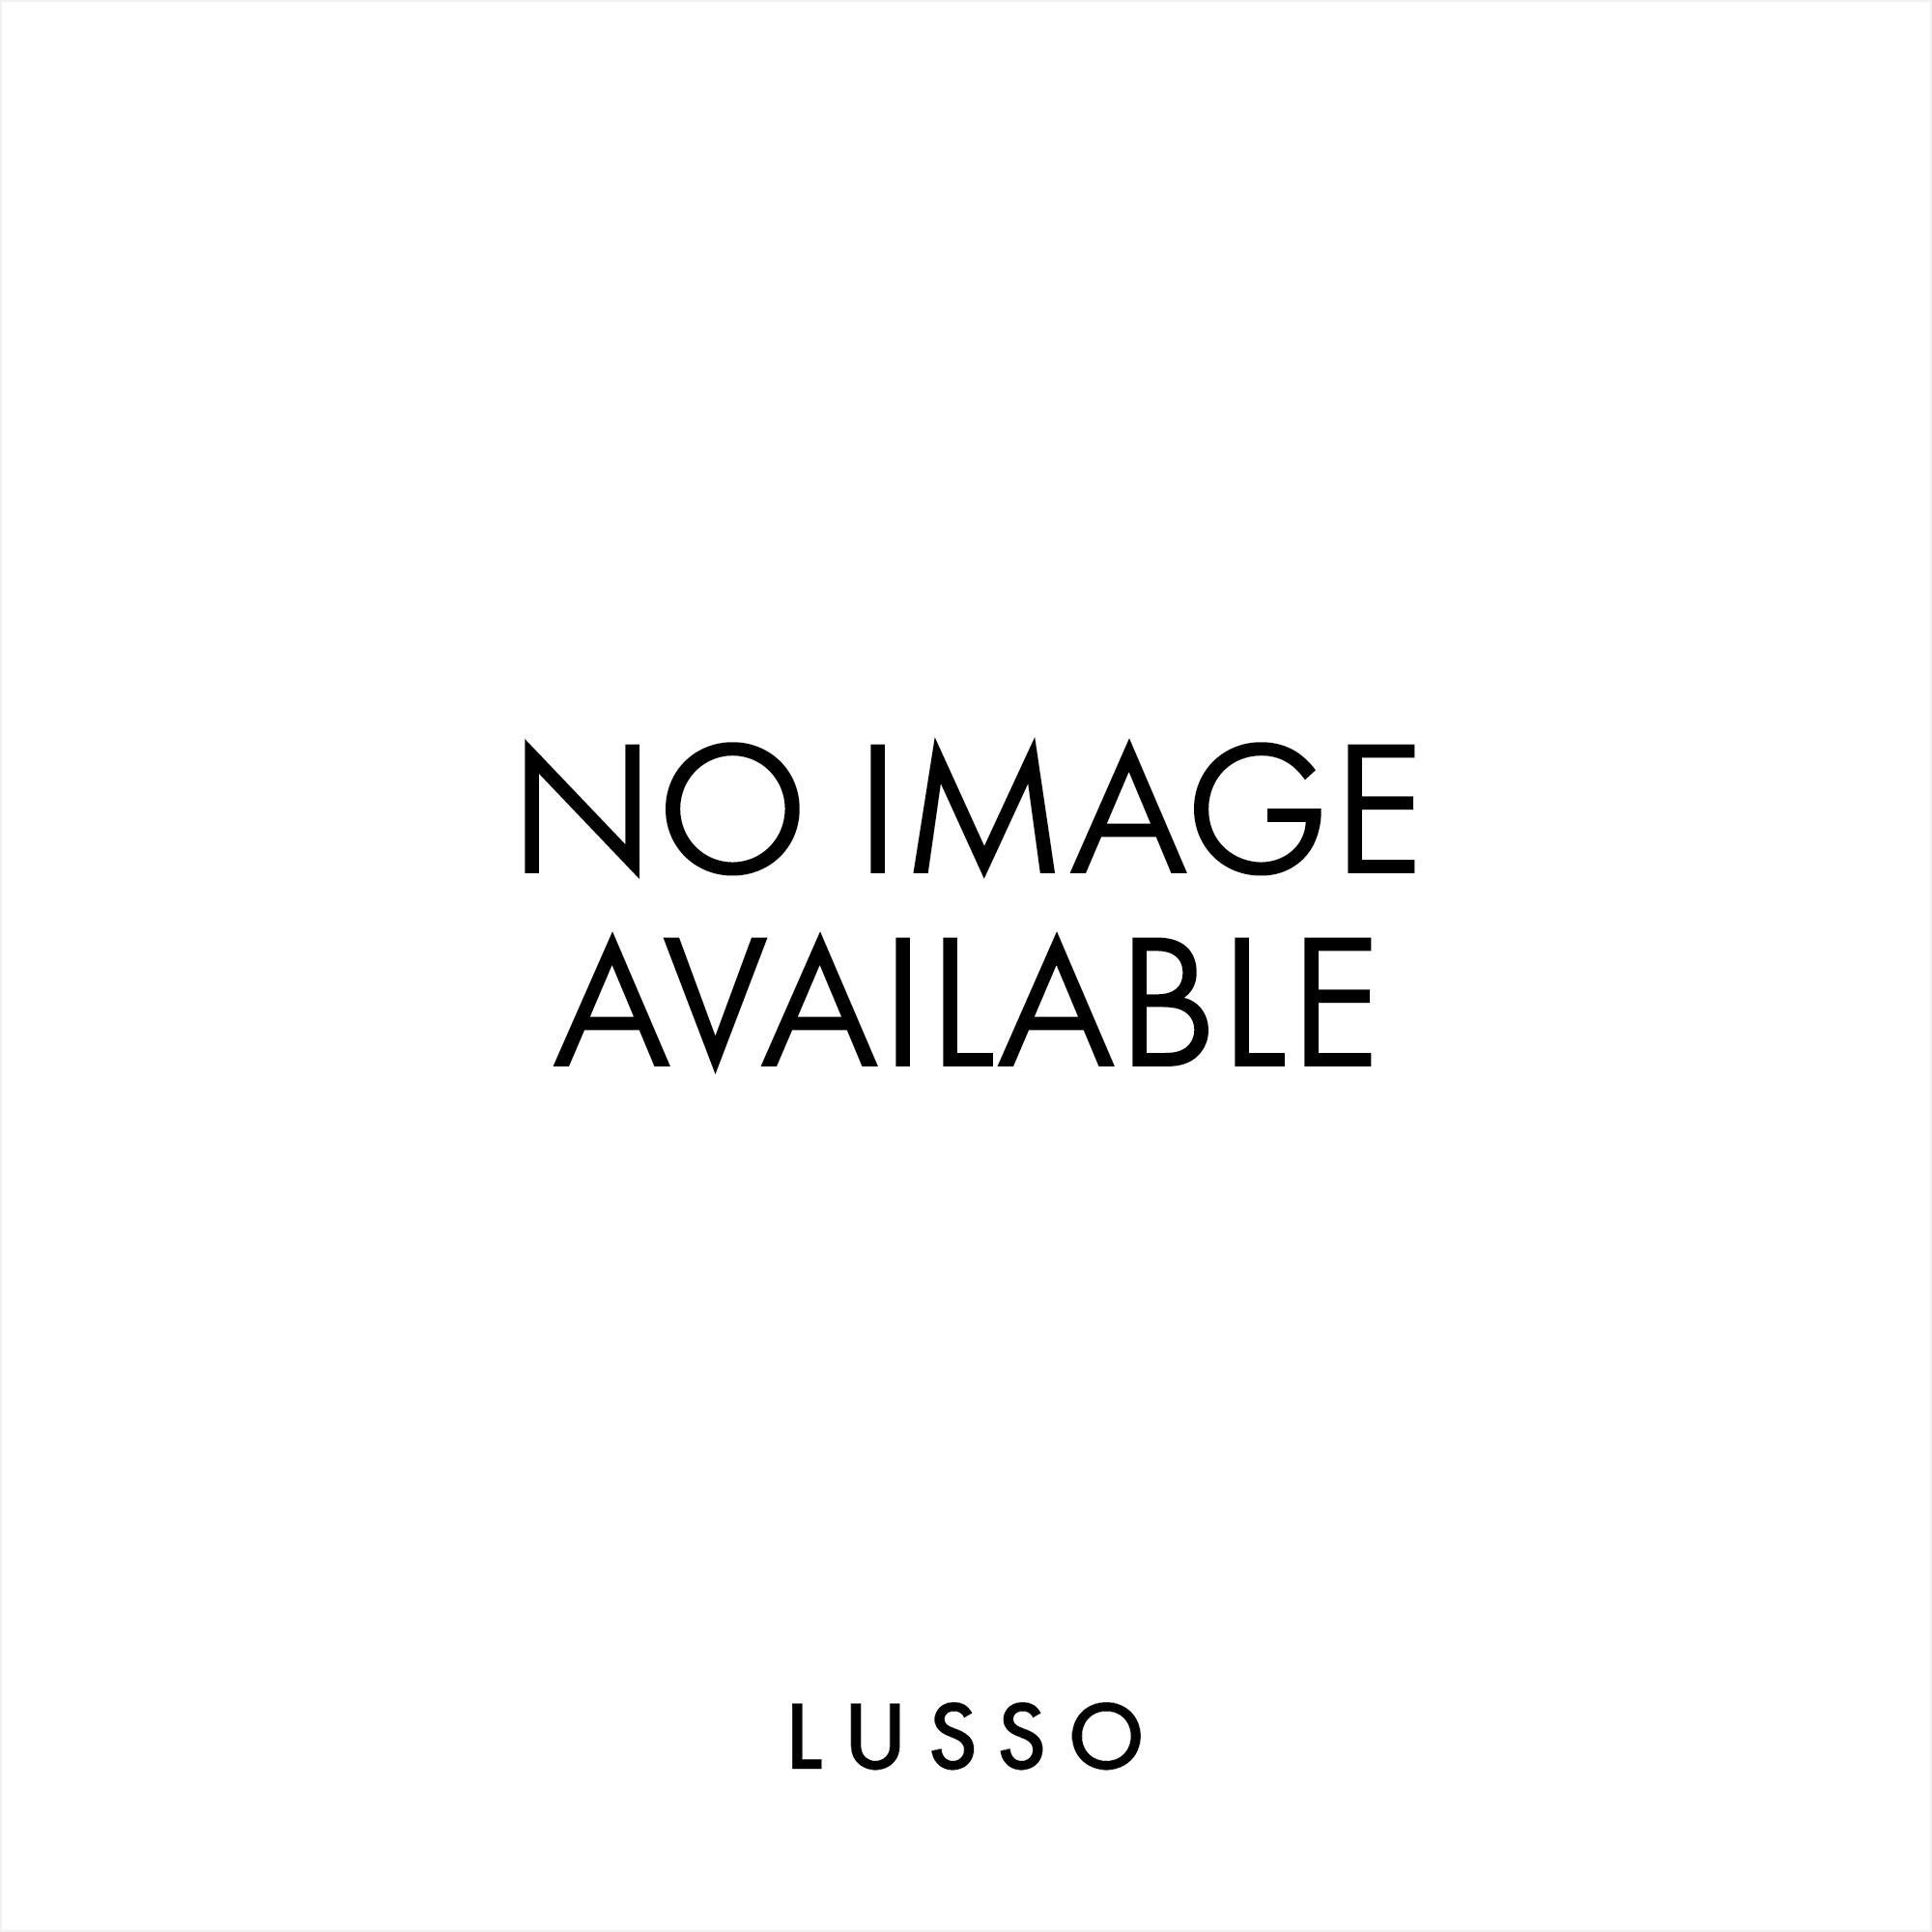 Lusso Stone Galala Mocca Large Double Ended Marble bath 1800 x 900